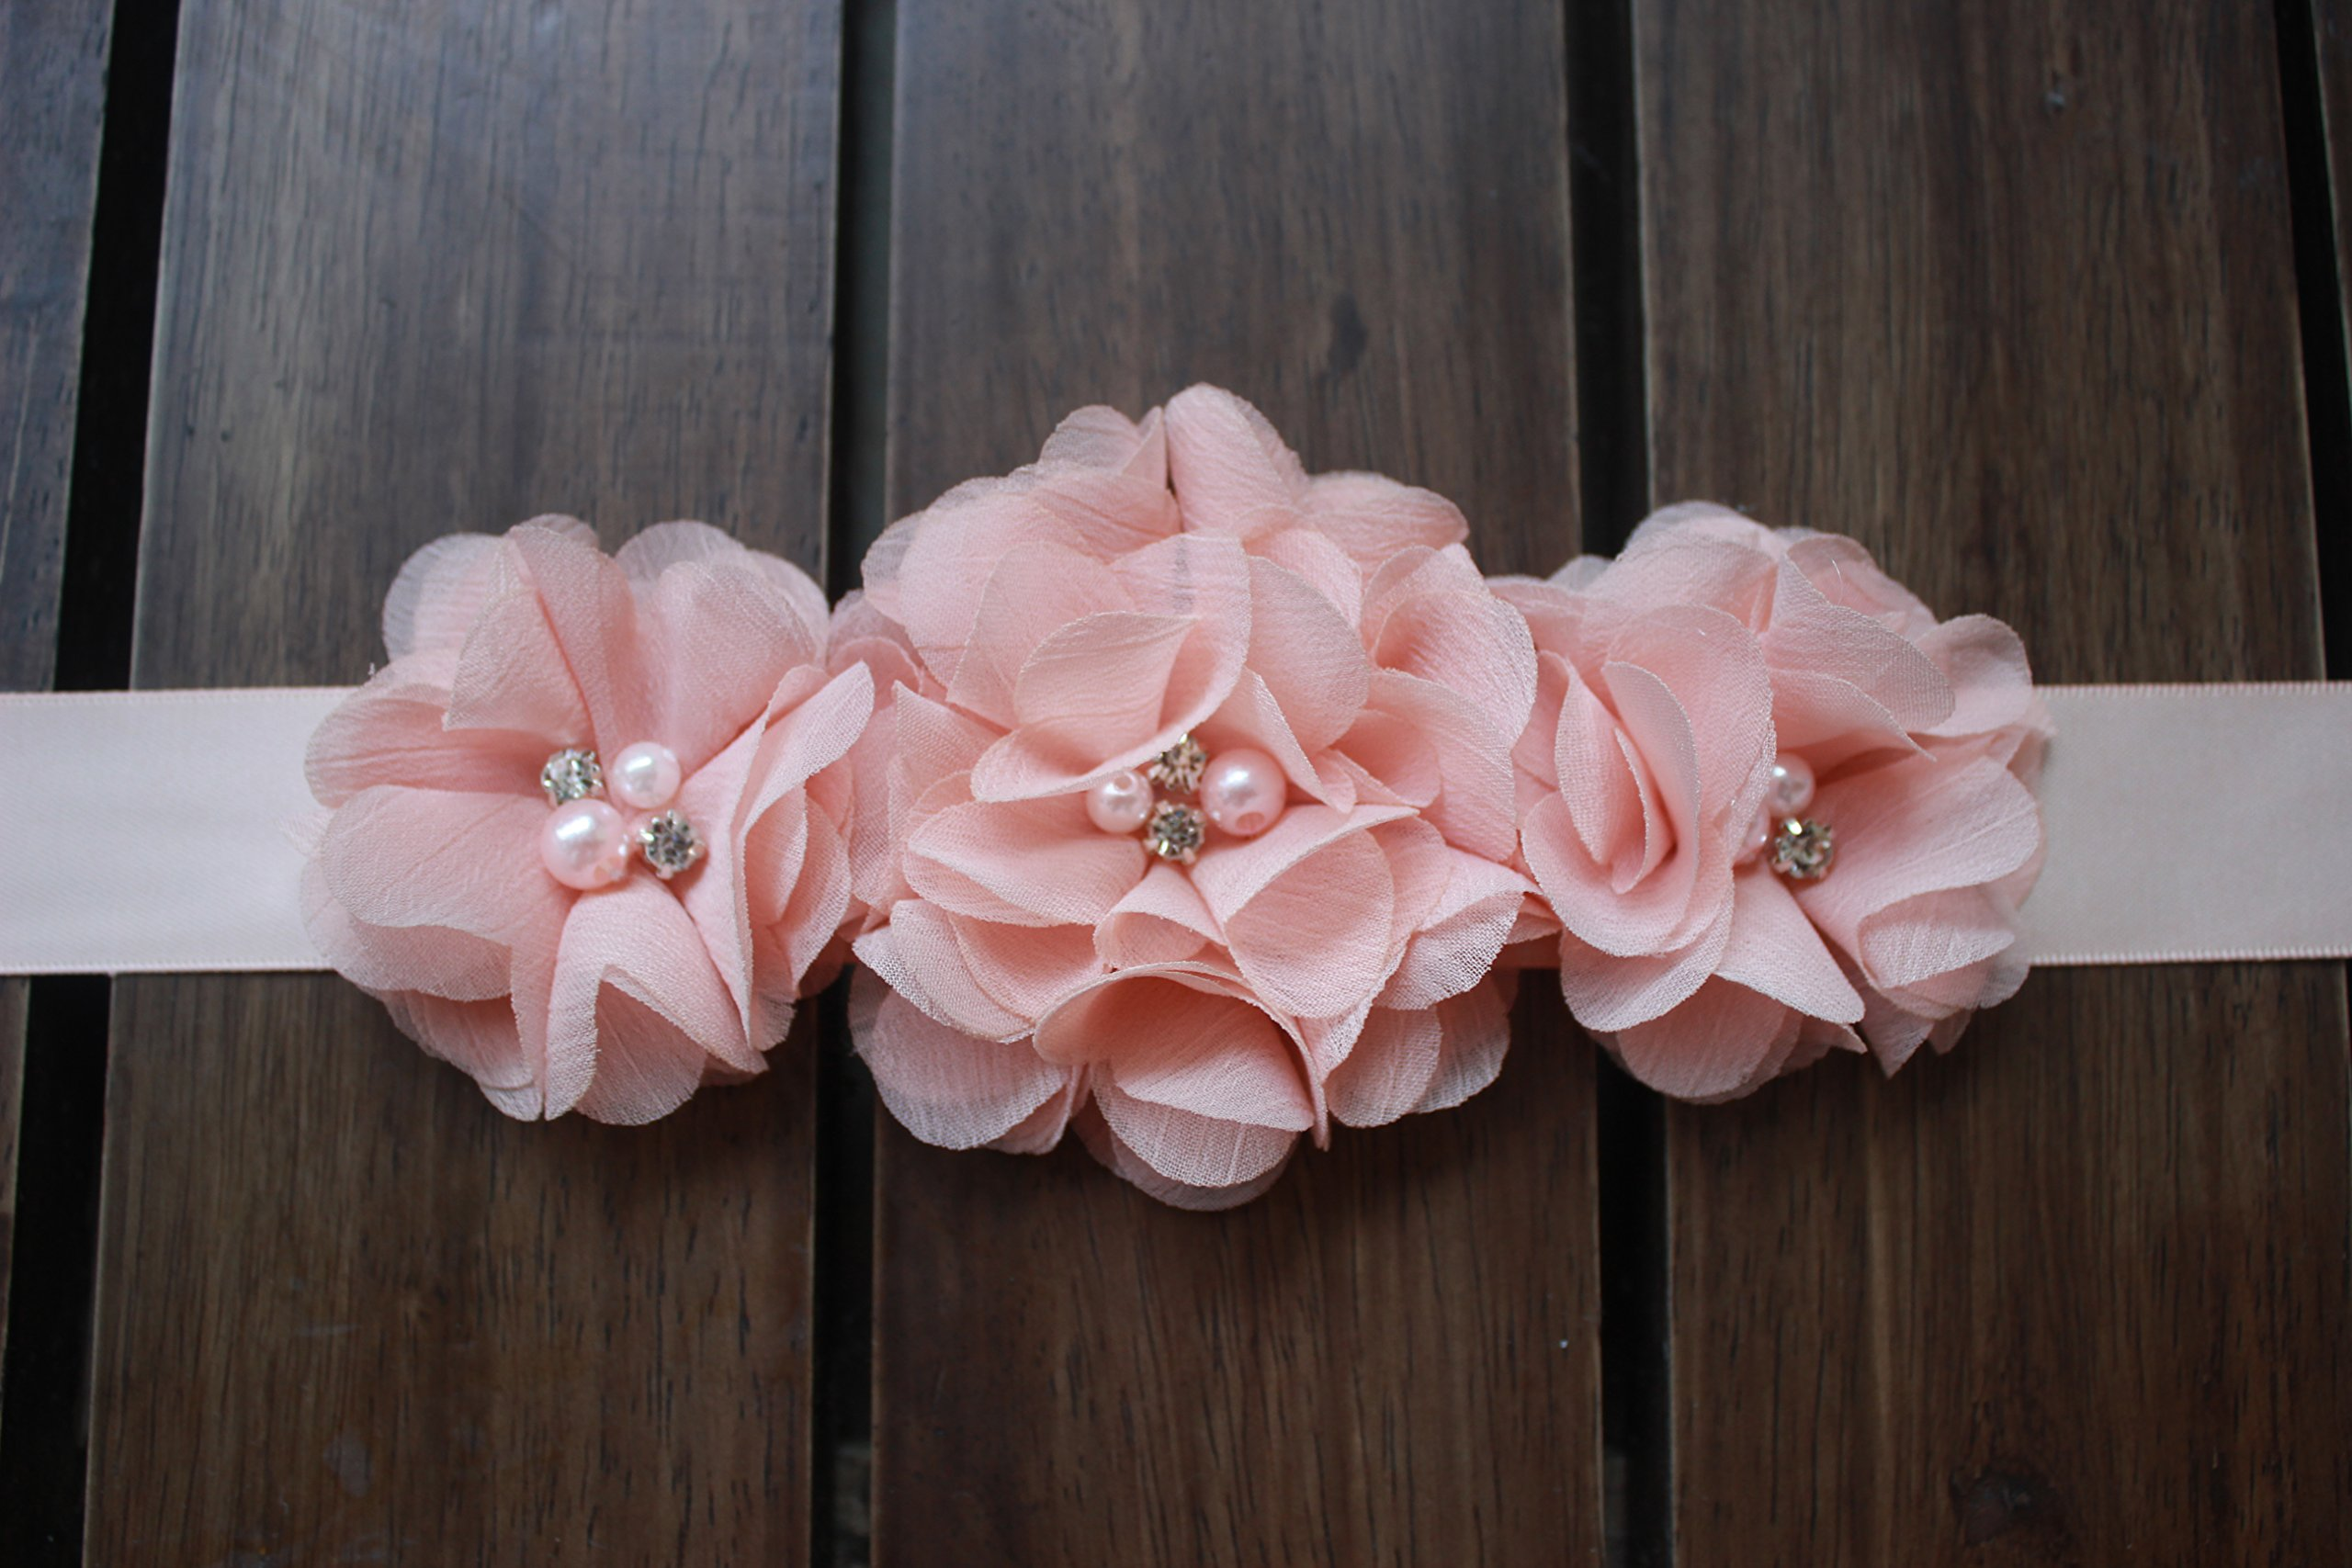 Bridesmaid and Flowergirls sashes wedding sash pearls flowers belts (Peach) by nania (Image #4)